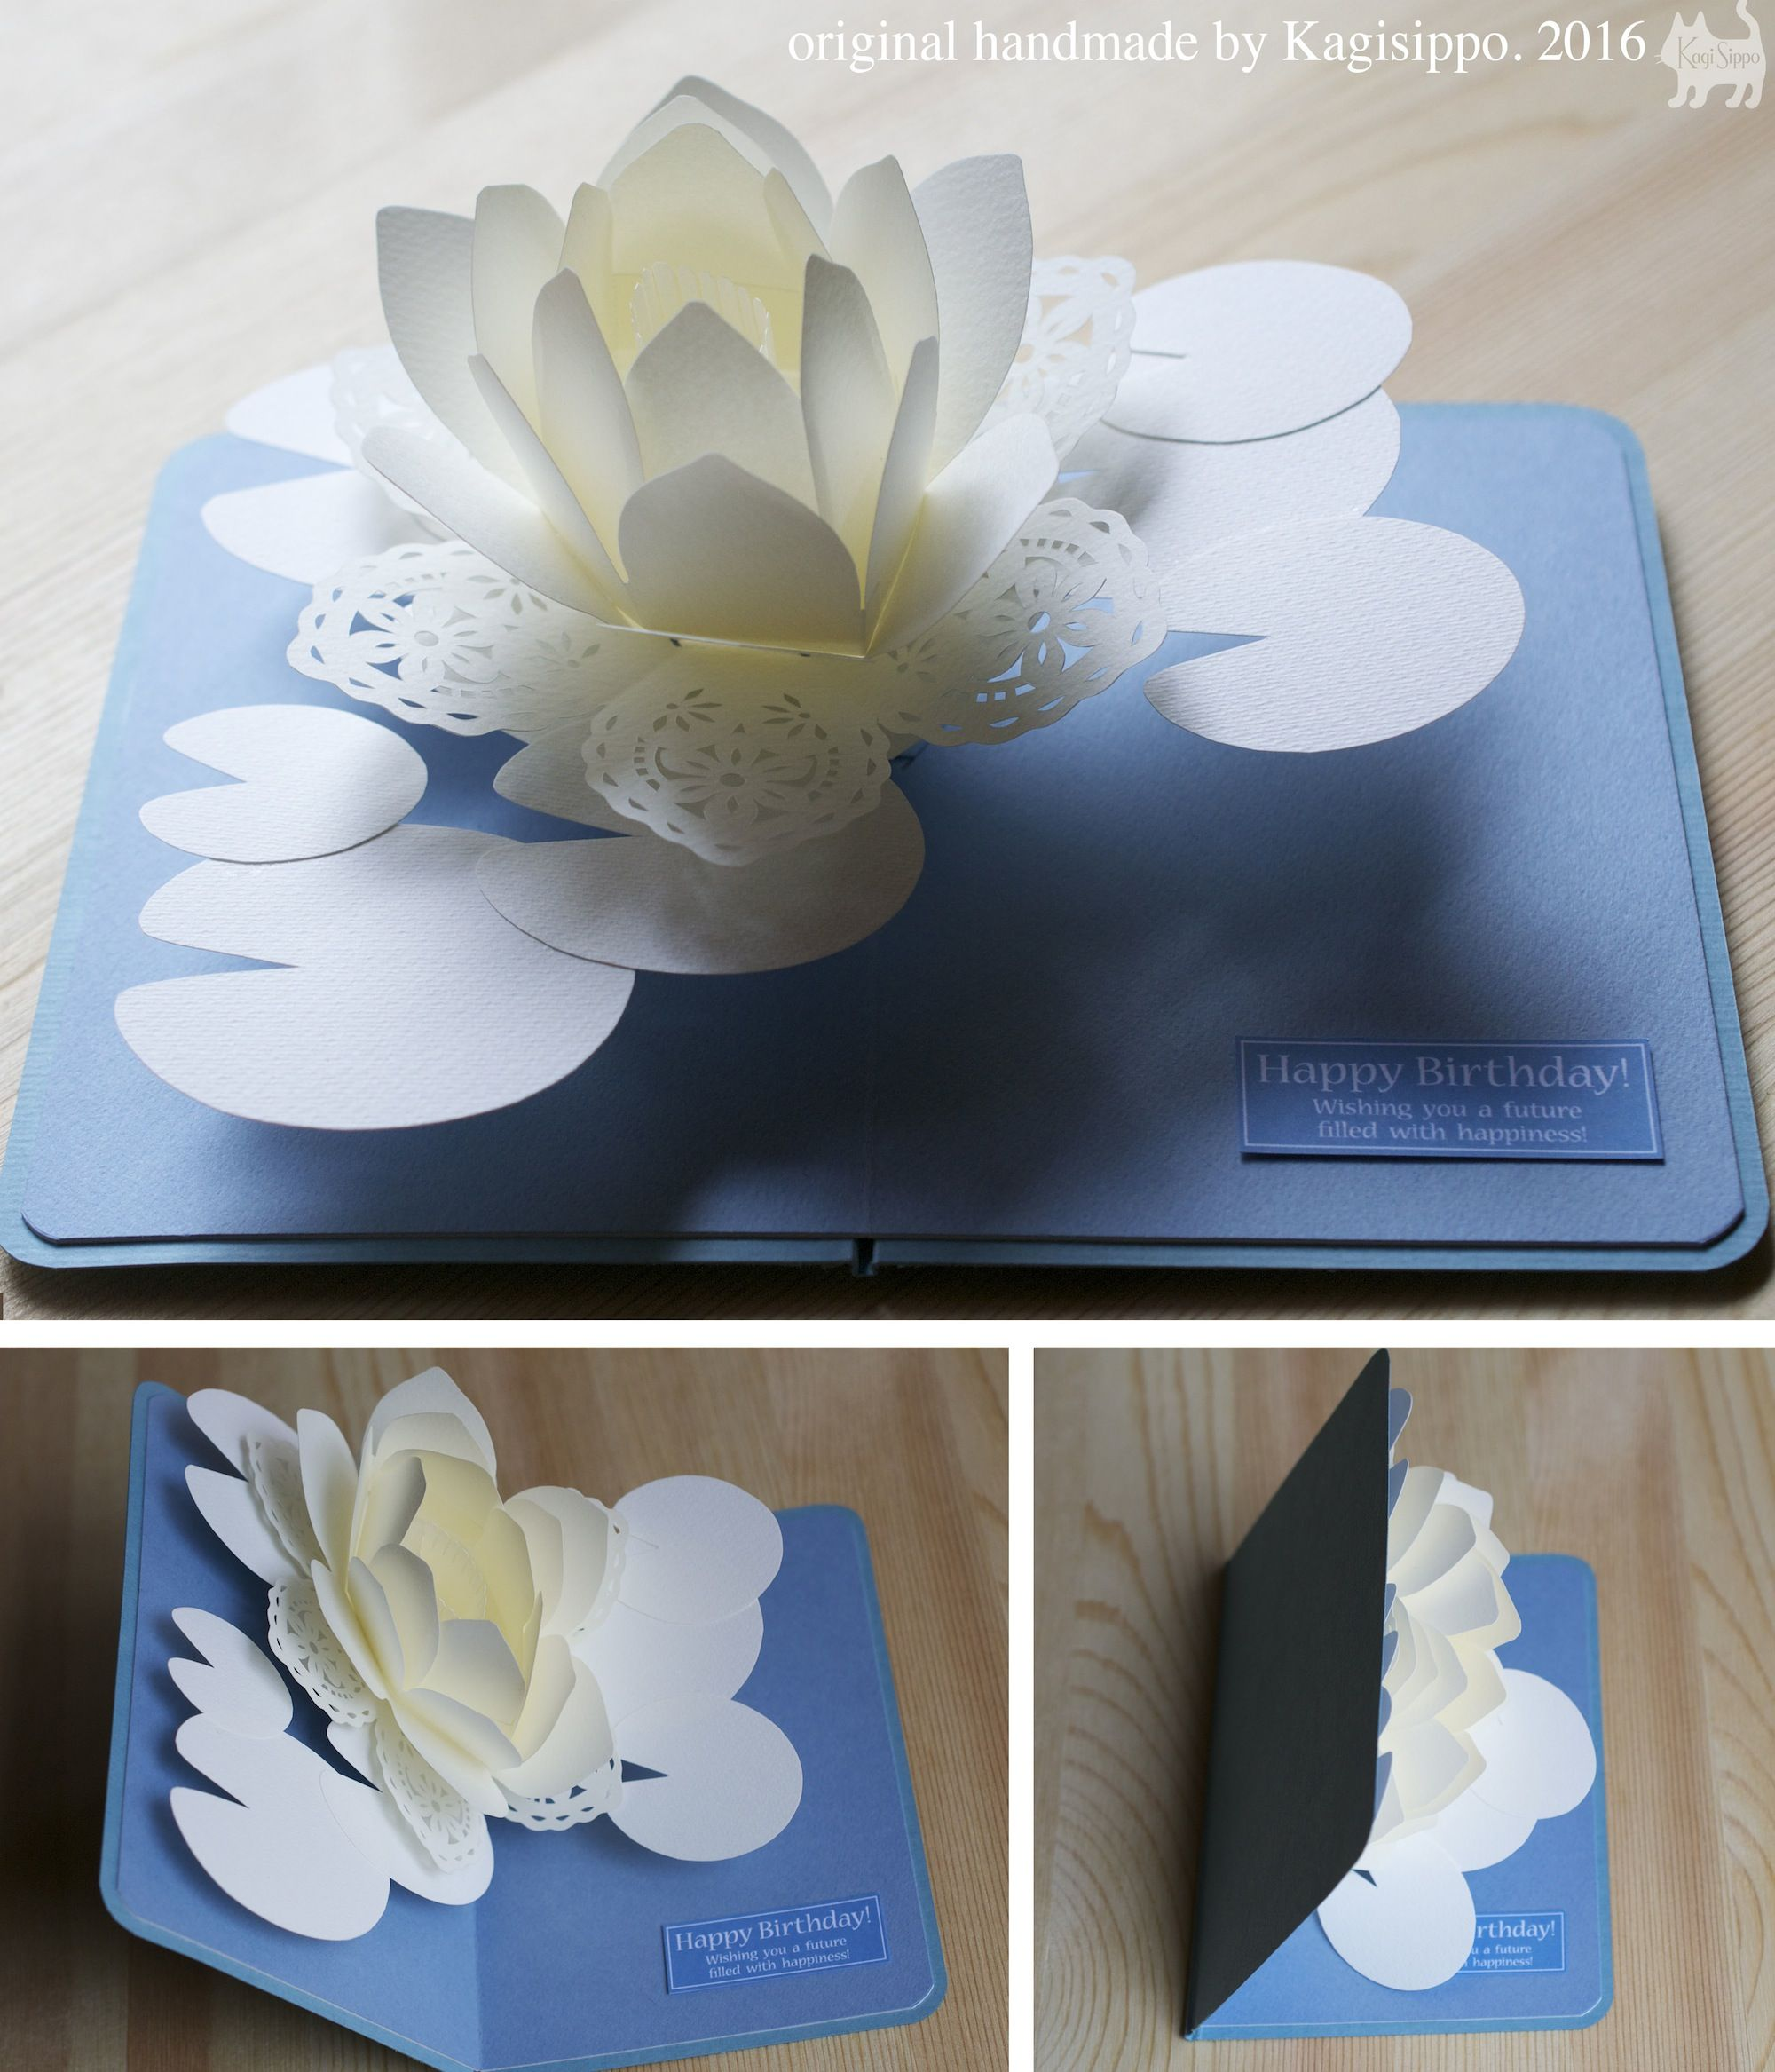 Pop Up Card Water Lily 2016 Original Handmade By Kagisippo Youtube Https Youtu Be Mmo8mkja Birthday Card Pop Up Pop Up Flowers Origami Birthday Card